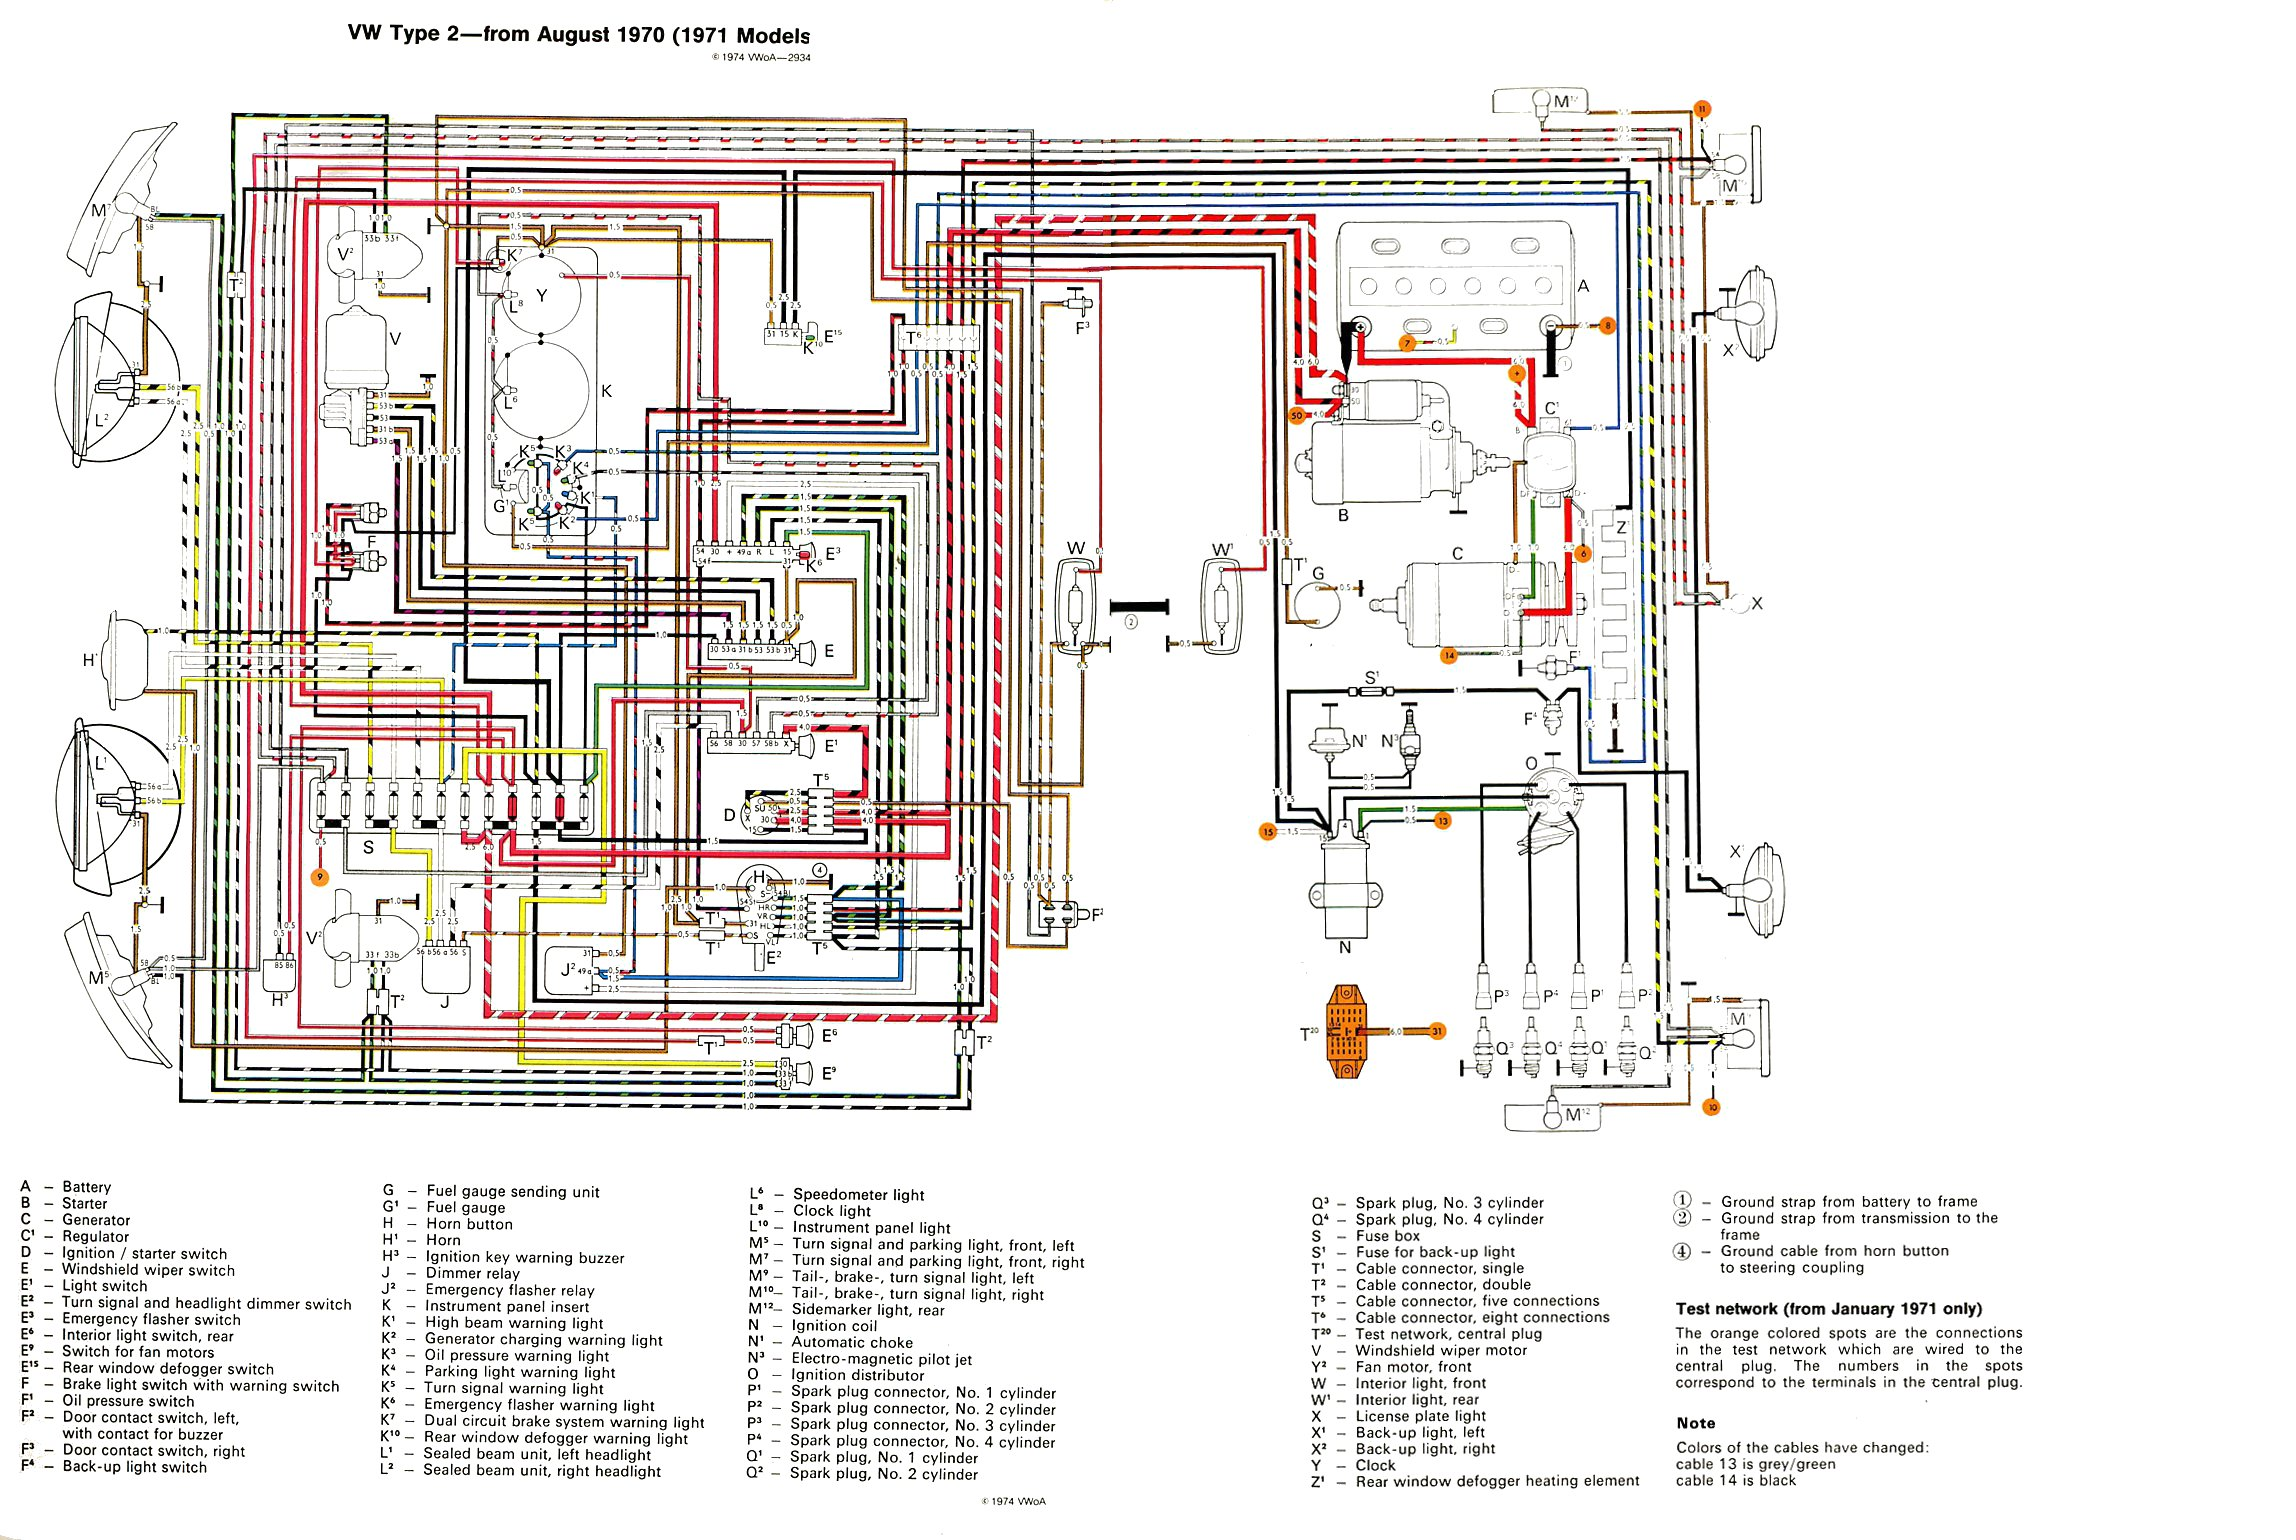 baybus_71 71 c10 wiring diagram 1970 gmc truck wiring diagram \u2022 free wiring 1967 gmc pickup wiring diagram at gsmx.co